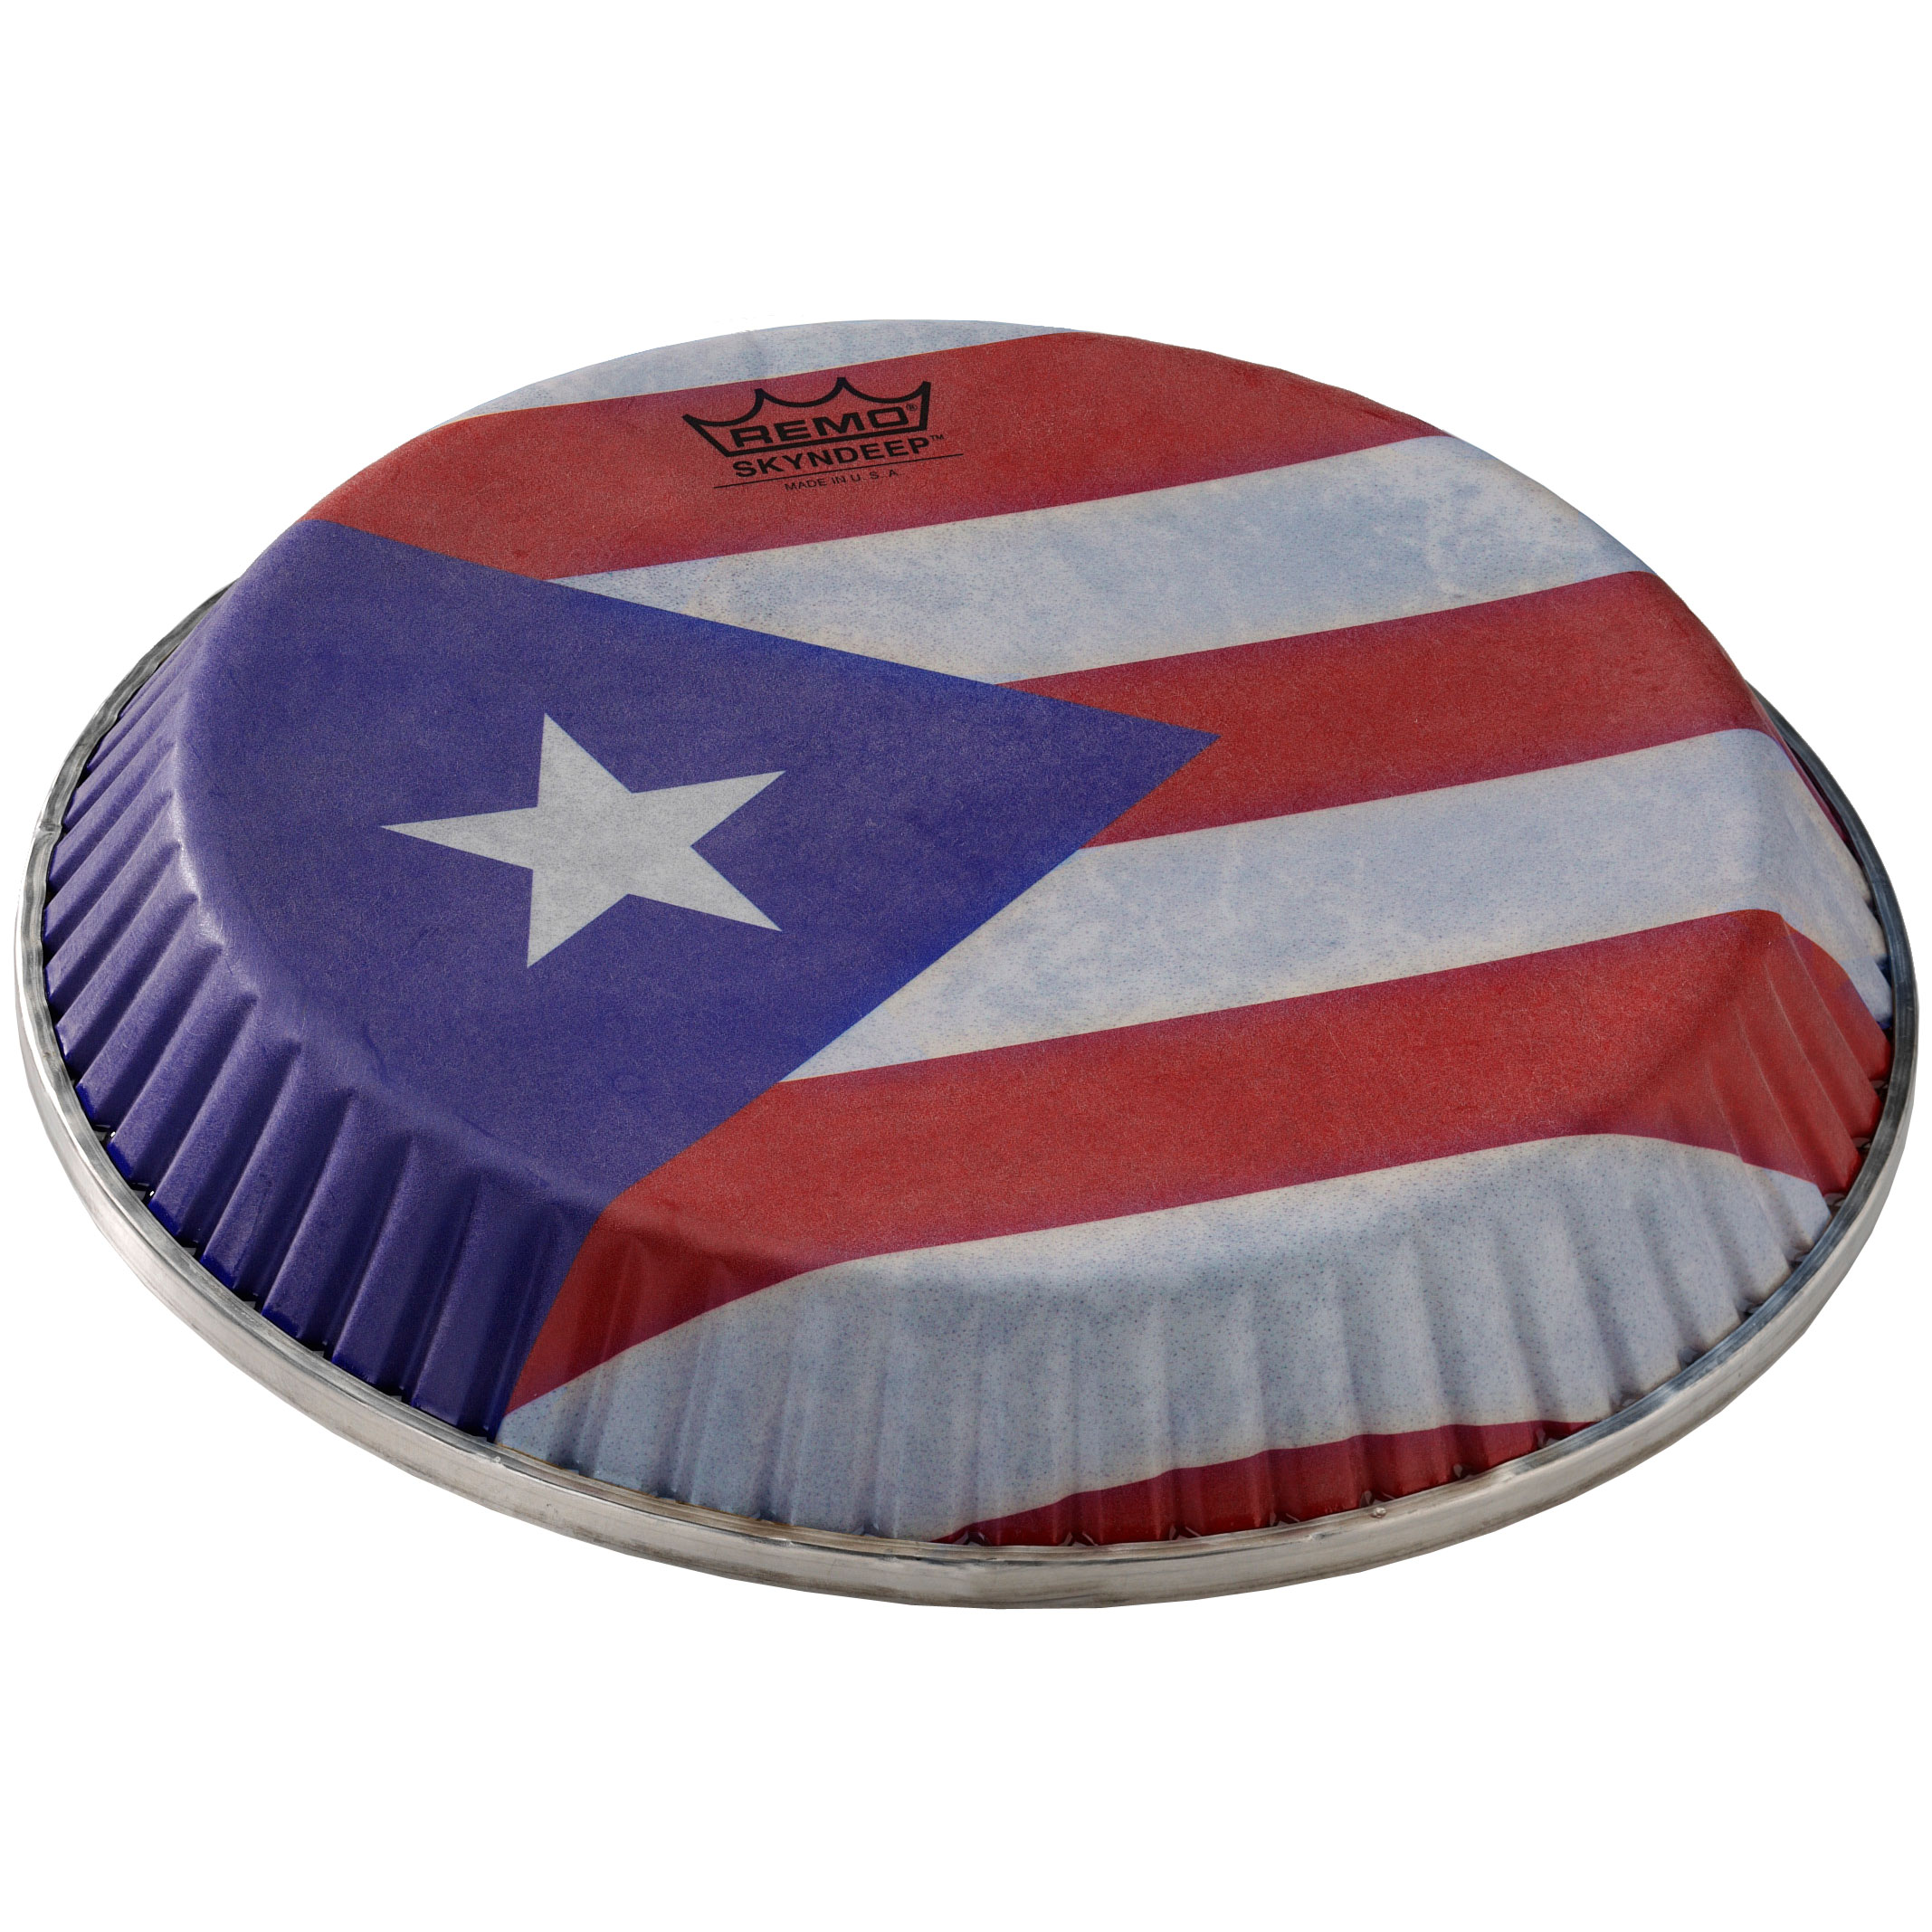 """Remo 13"""" Symmetry Skyndeep Conga Drum Head (D1 Collar) with Puerto Rican Flag Graphic"""